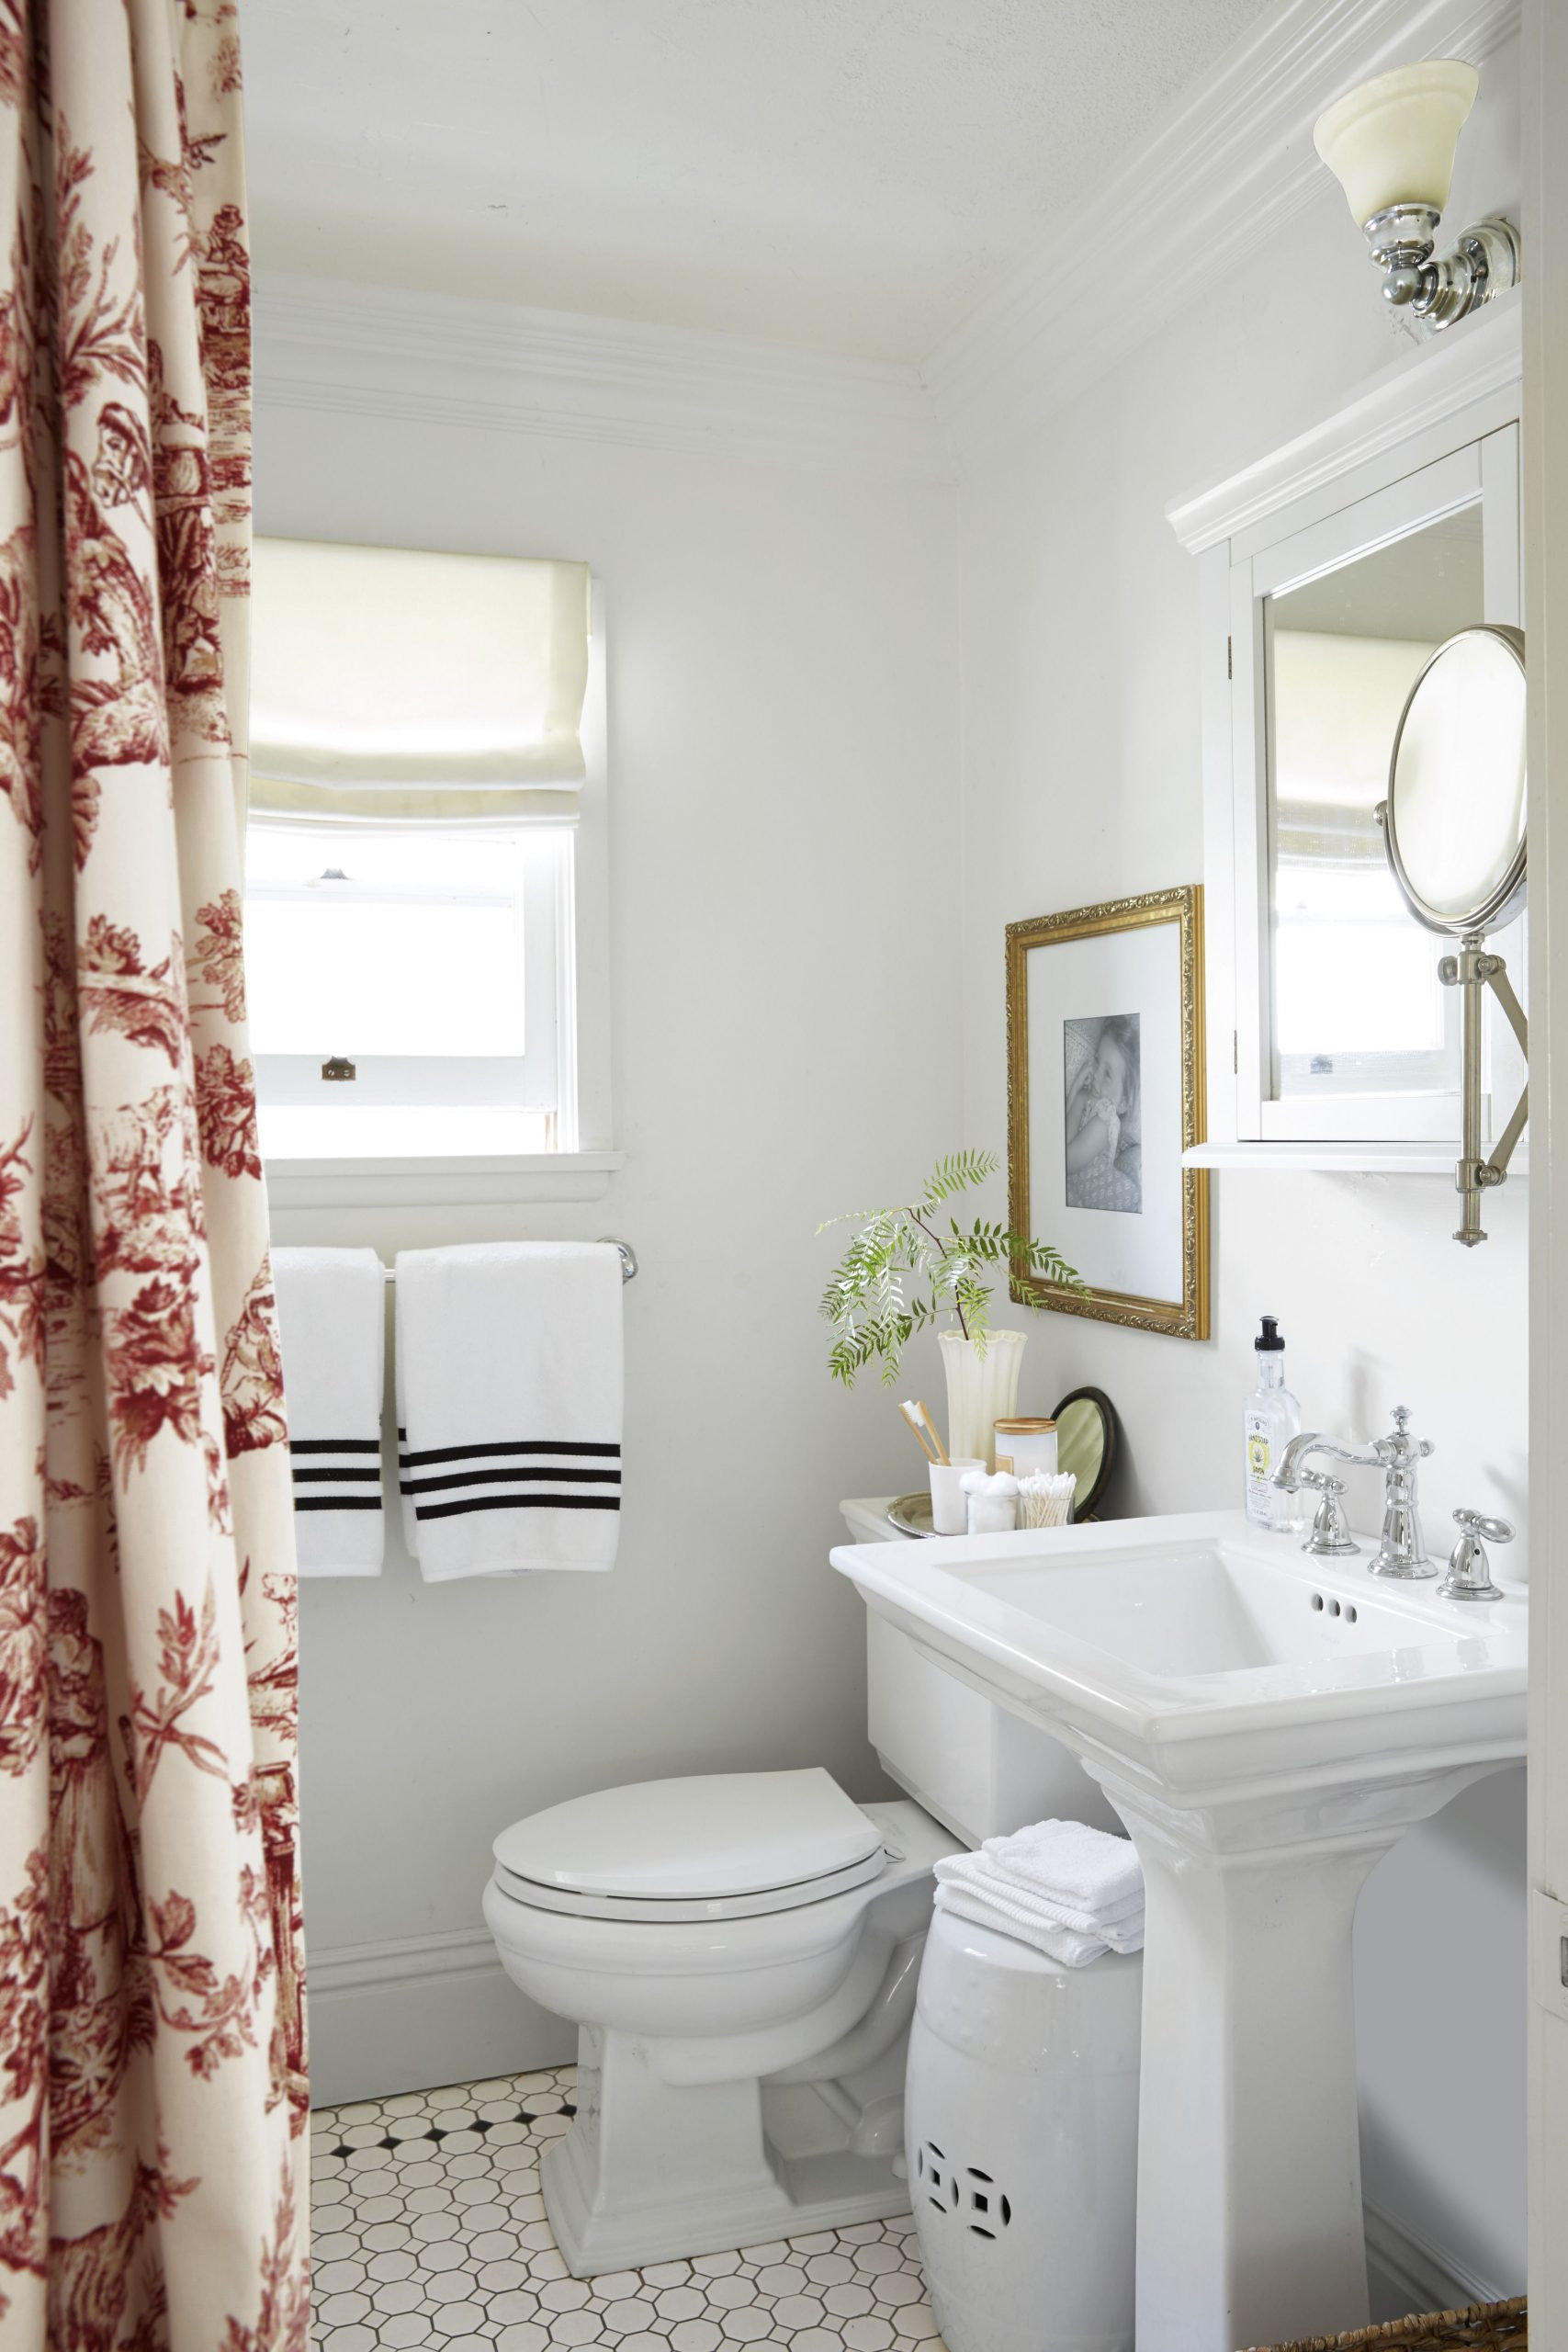 Bathroom Decorating Ideas Pictures for Small Bathrooms Awesome Bathroom Bathroom Decorating Ideas Decor